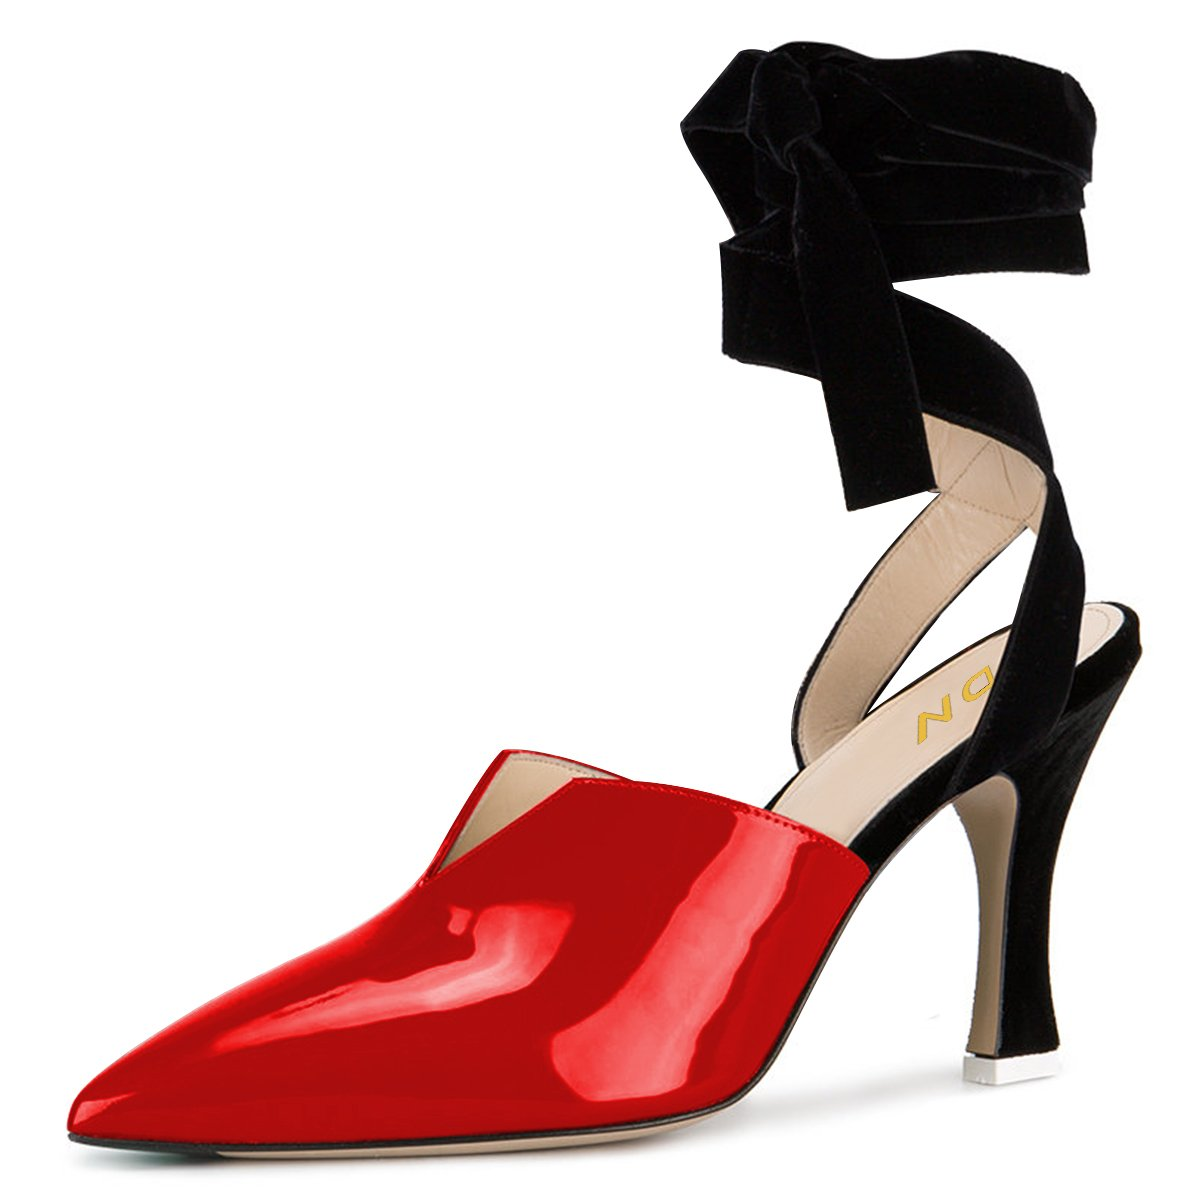 YDN Women Lace up Low Heels Sandals Pointed Toe D'Orsay Pumps Slingback Party Dress Shoes Red 5